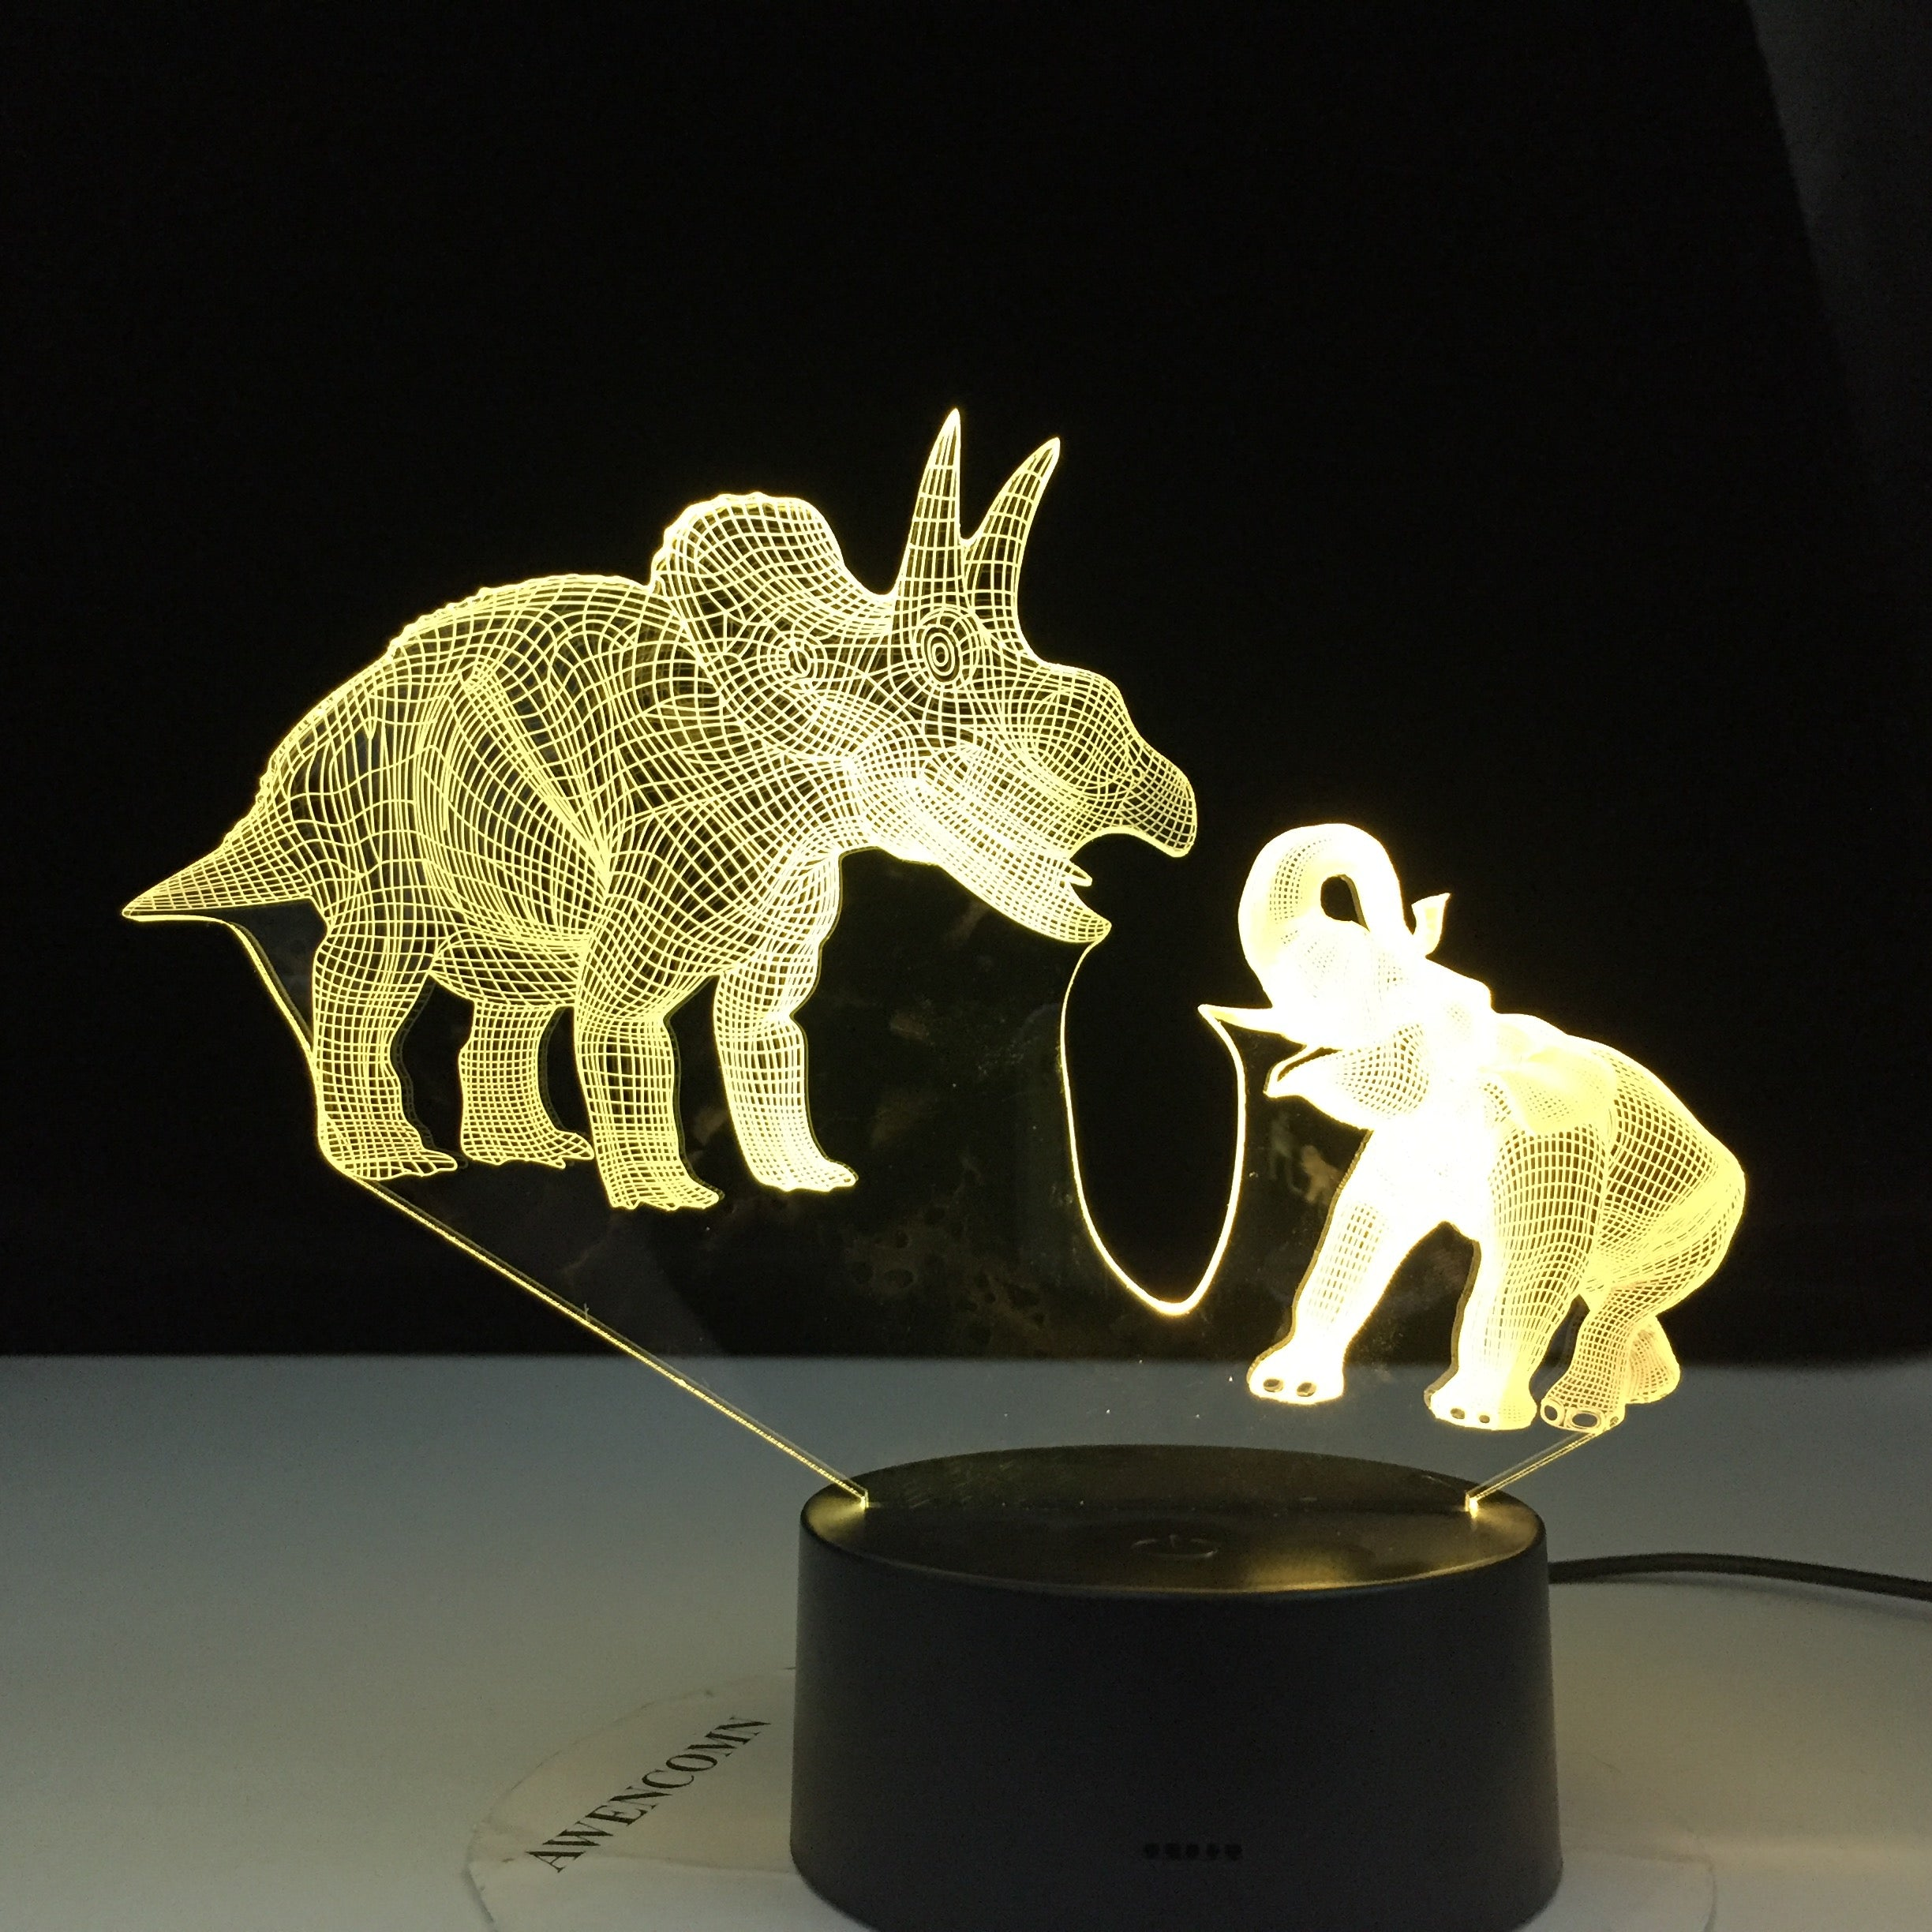 Dinosaur and Elephant Series 7/16 Colors Change LED Table Desk Lamp Kids Gift Home Decoration Touch Led Lamp 3D Night Light